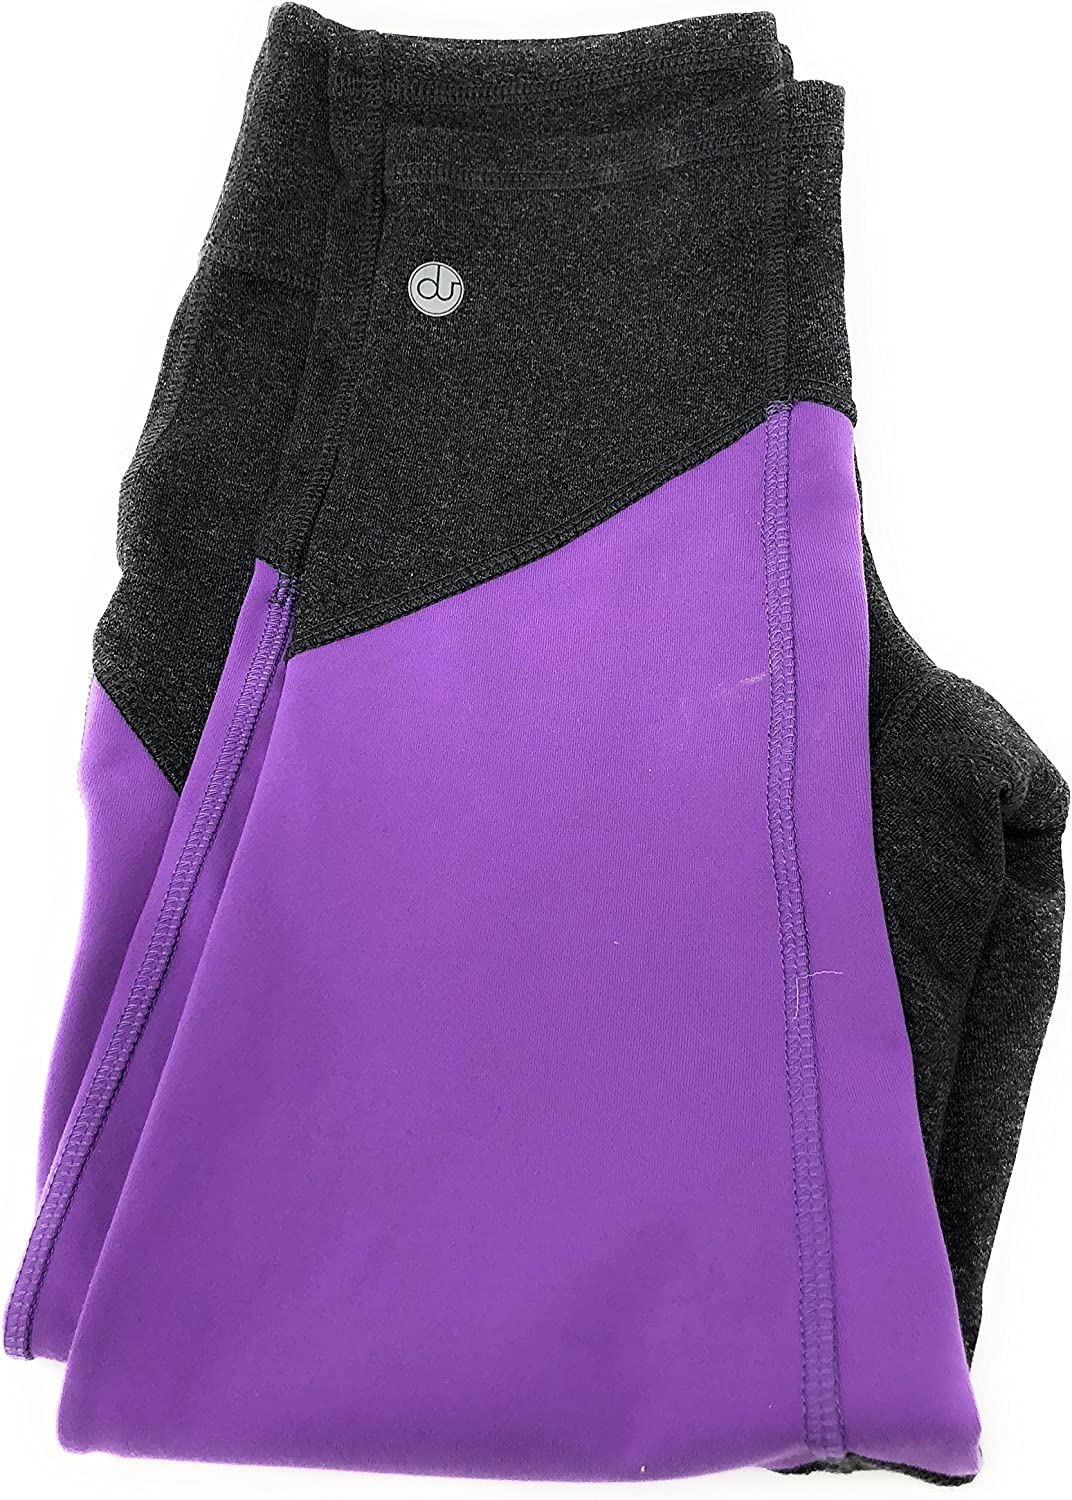 nicepipes Nice Crops Premium Yoga Pants Fitness Apparel Made in The USA Apparel for Women Dark Grey and Purlpe Fuschia